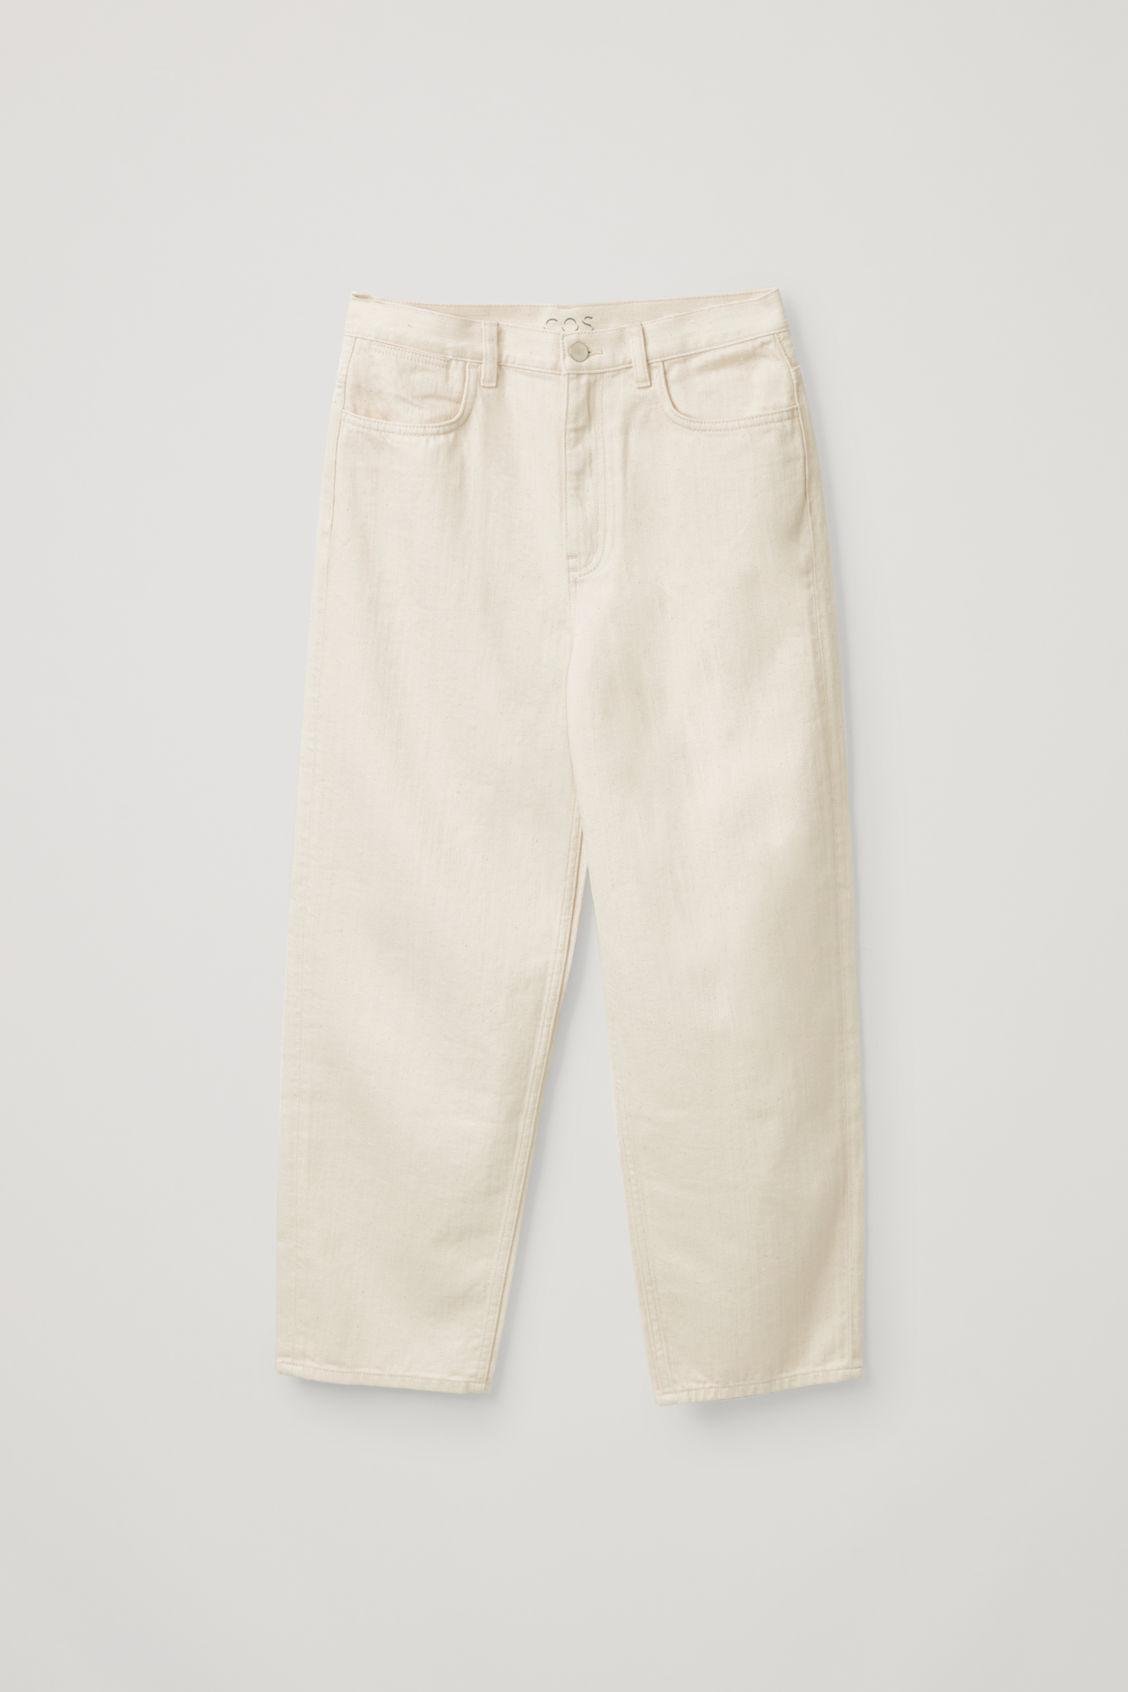 STRAIGHT MID-RISE JEANS 5